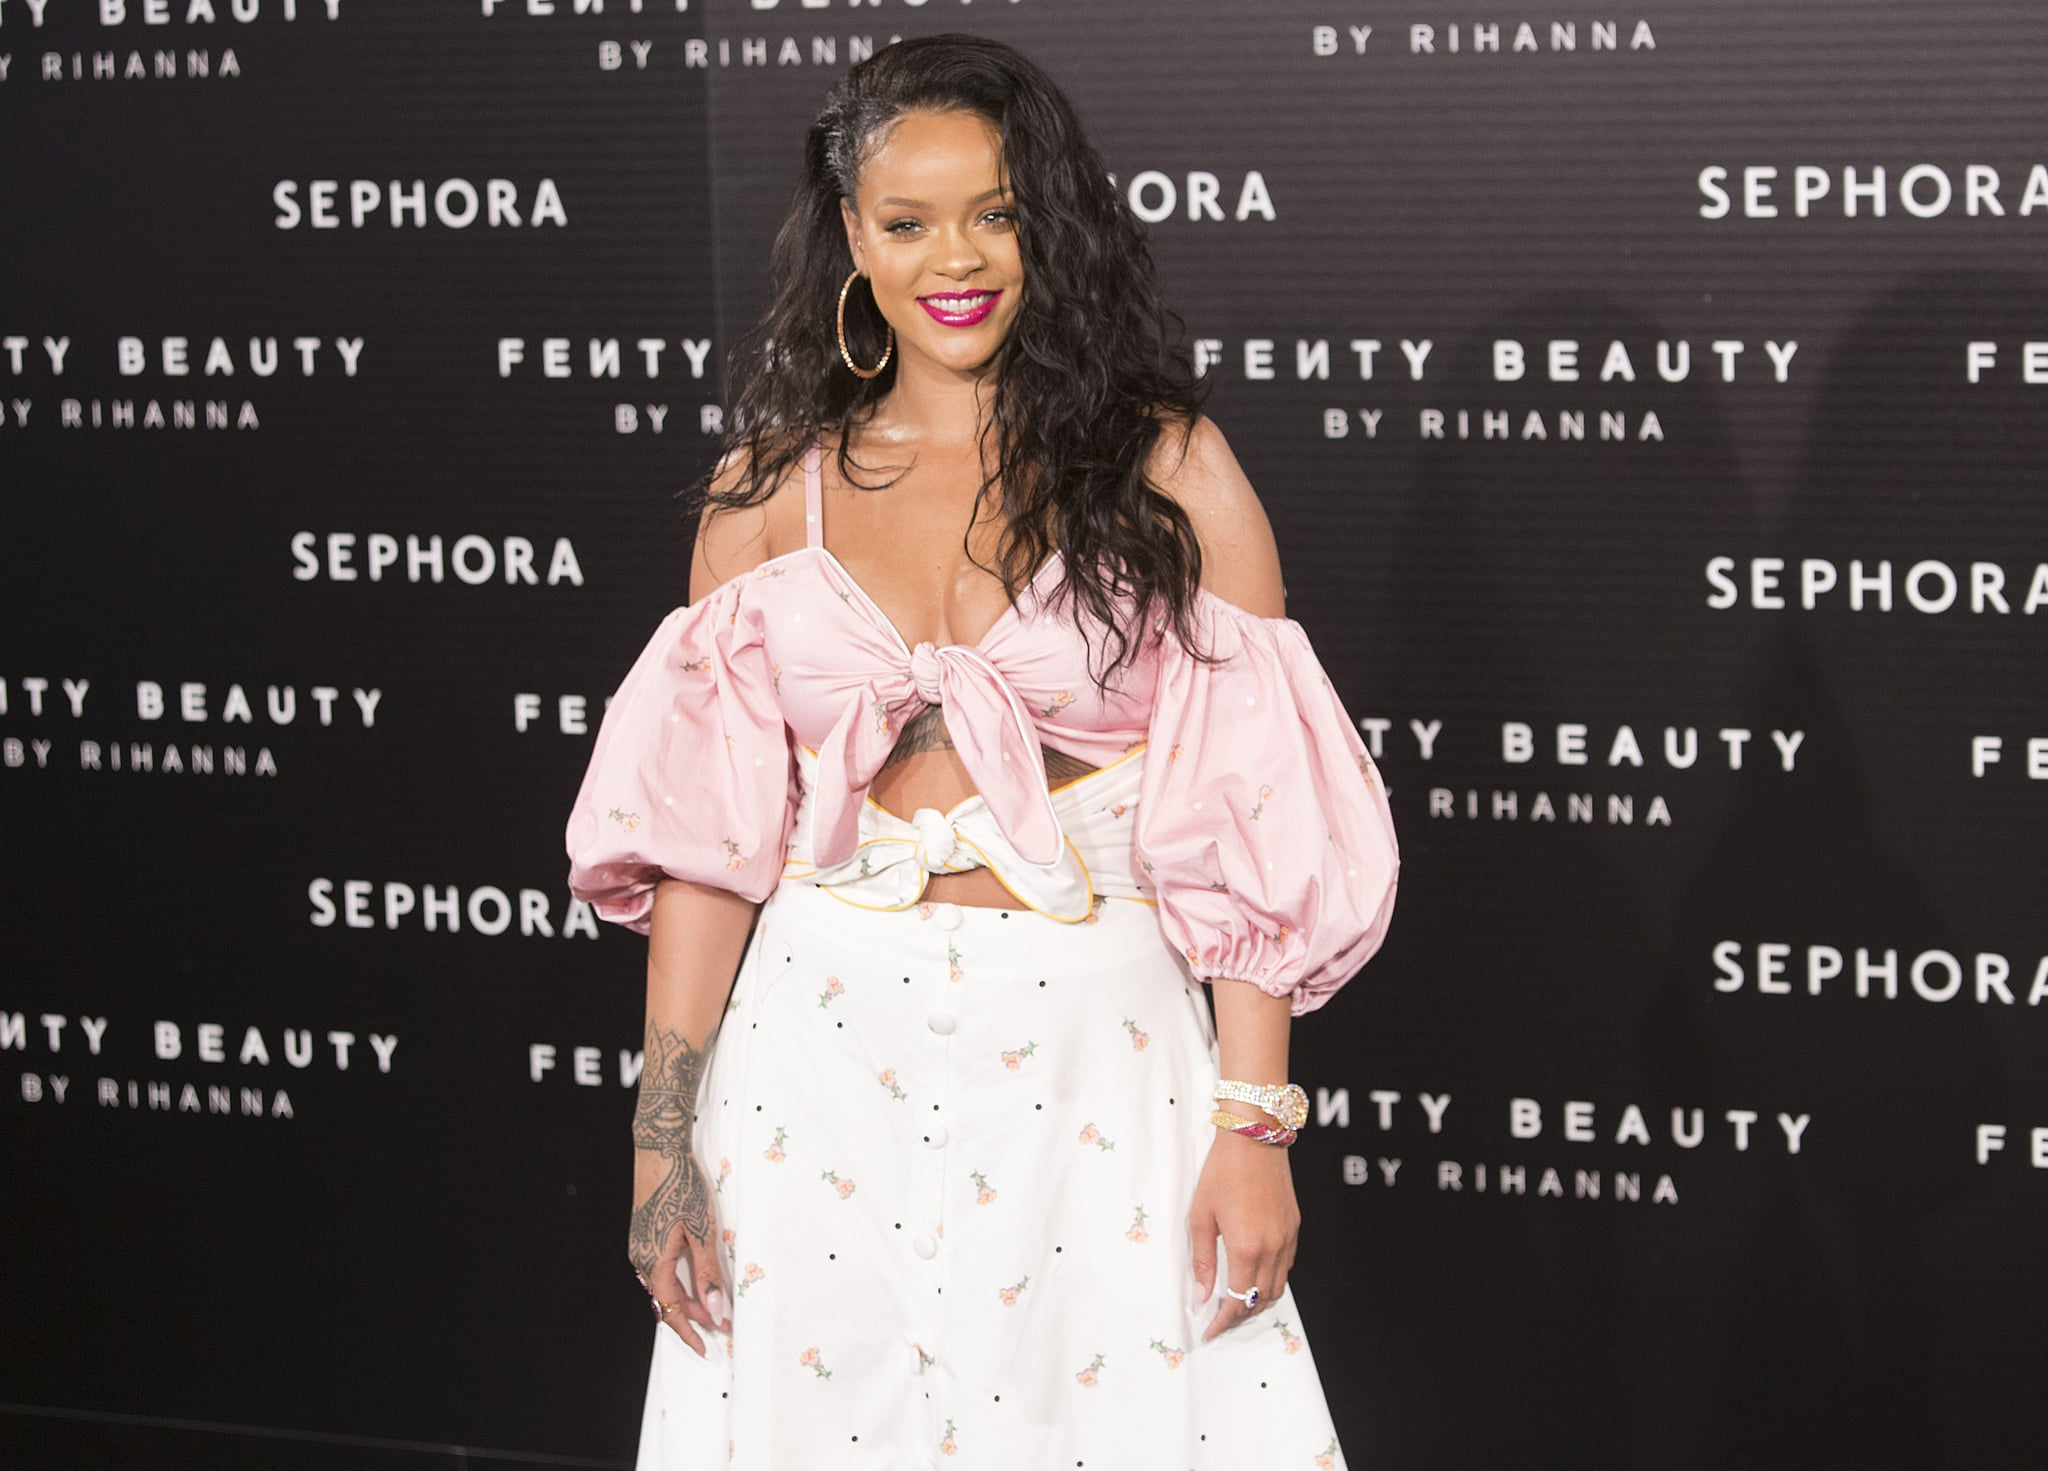 MADRID, SPAIN - SEPTEMBER 23: Rihanna attends Rihanna Fenty Beauty Presentation in Madrid on September 23, 2017 in Madrid, Spain. (Photo by Angel Manzano/WireImage)